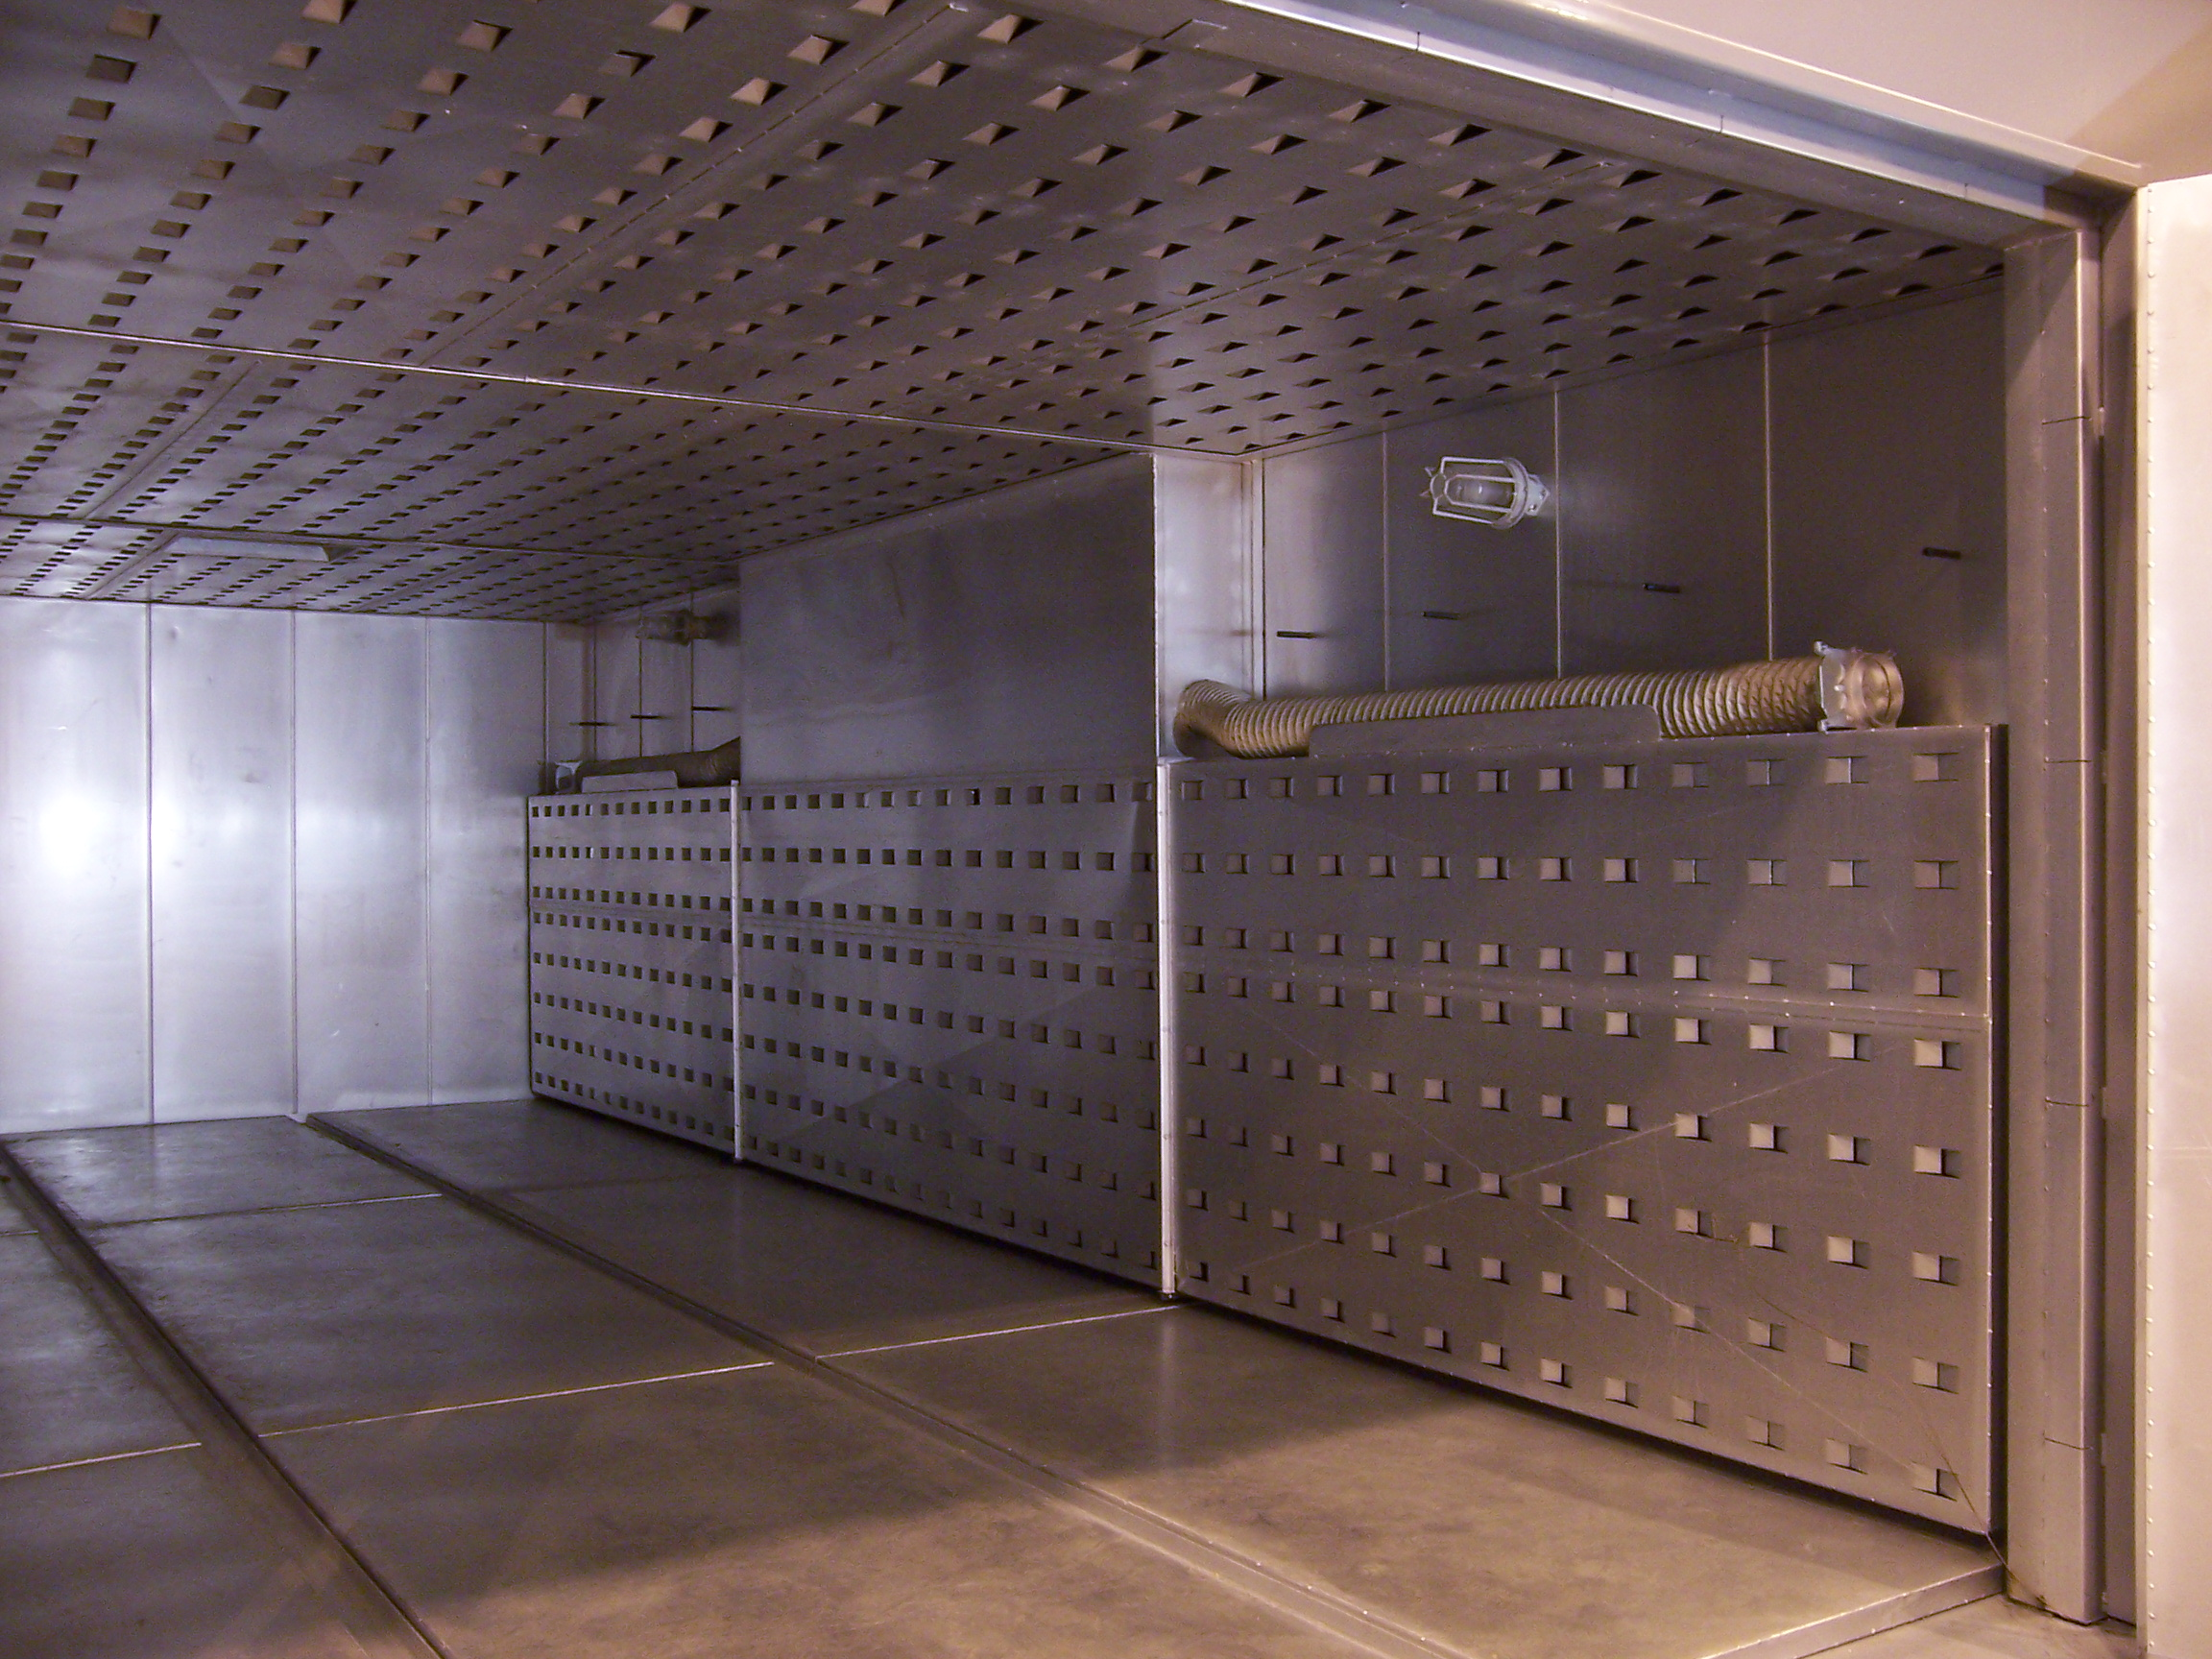 Curing Oven Interior